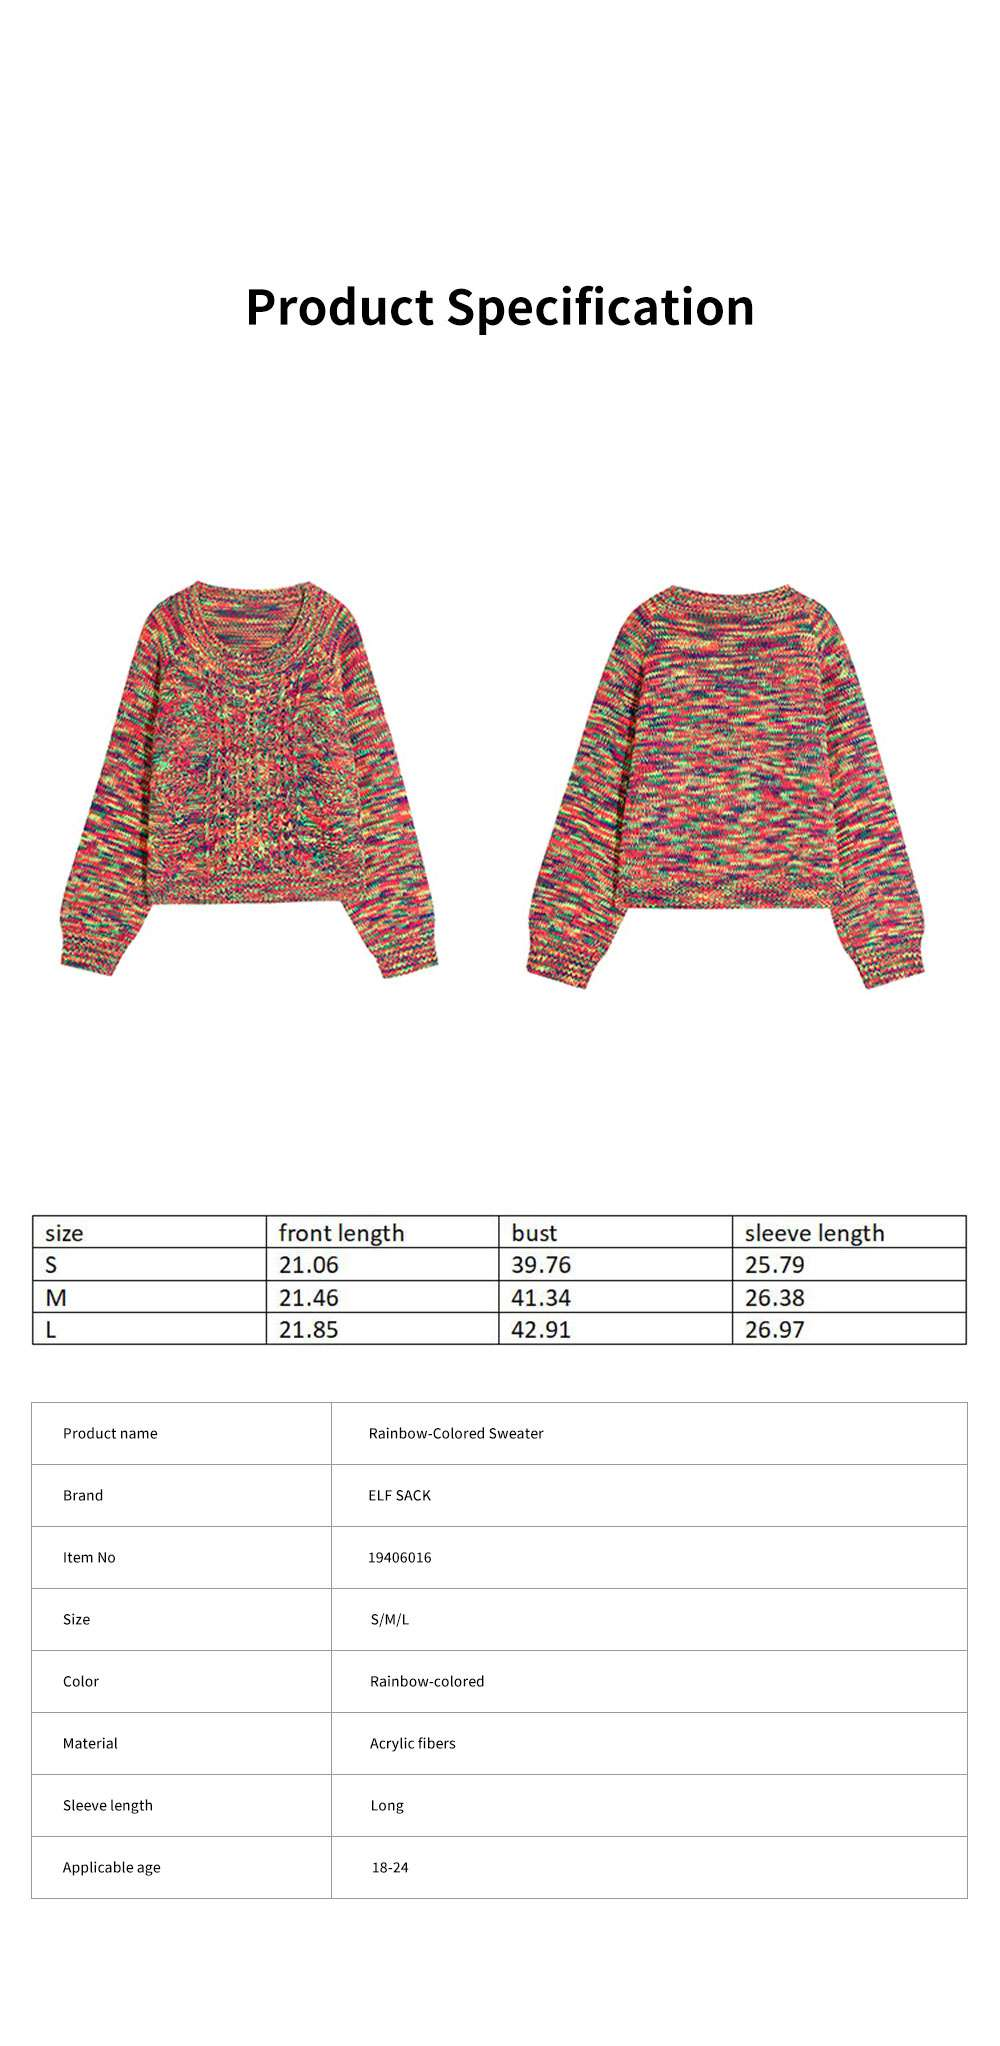 ELFSACK Rainbow-Colored Knitwear Lightweight Pullover Round Neck Sweater for Women in Autumn and Winter 6